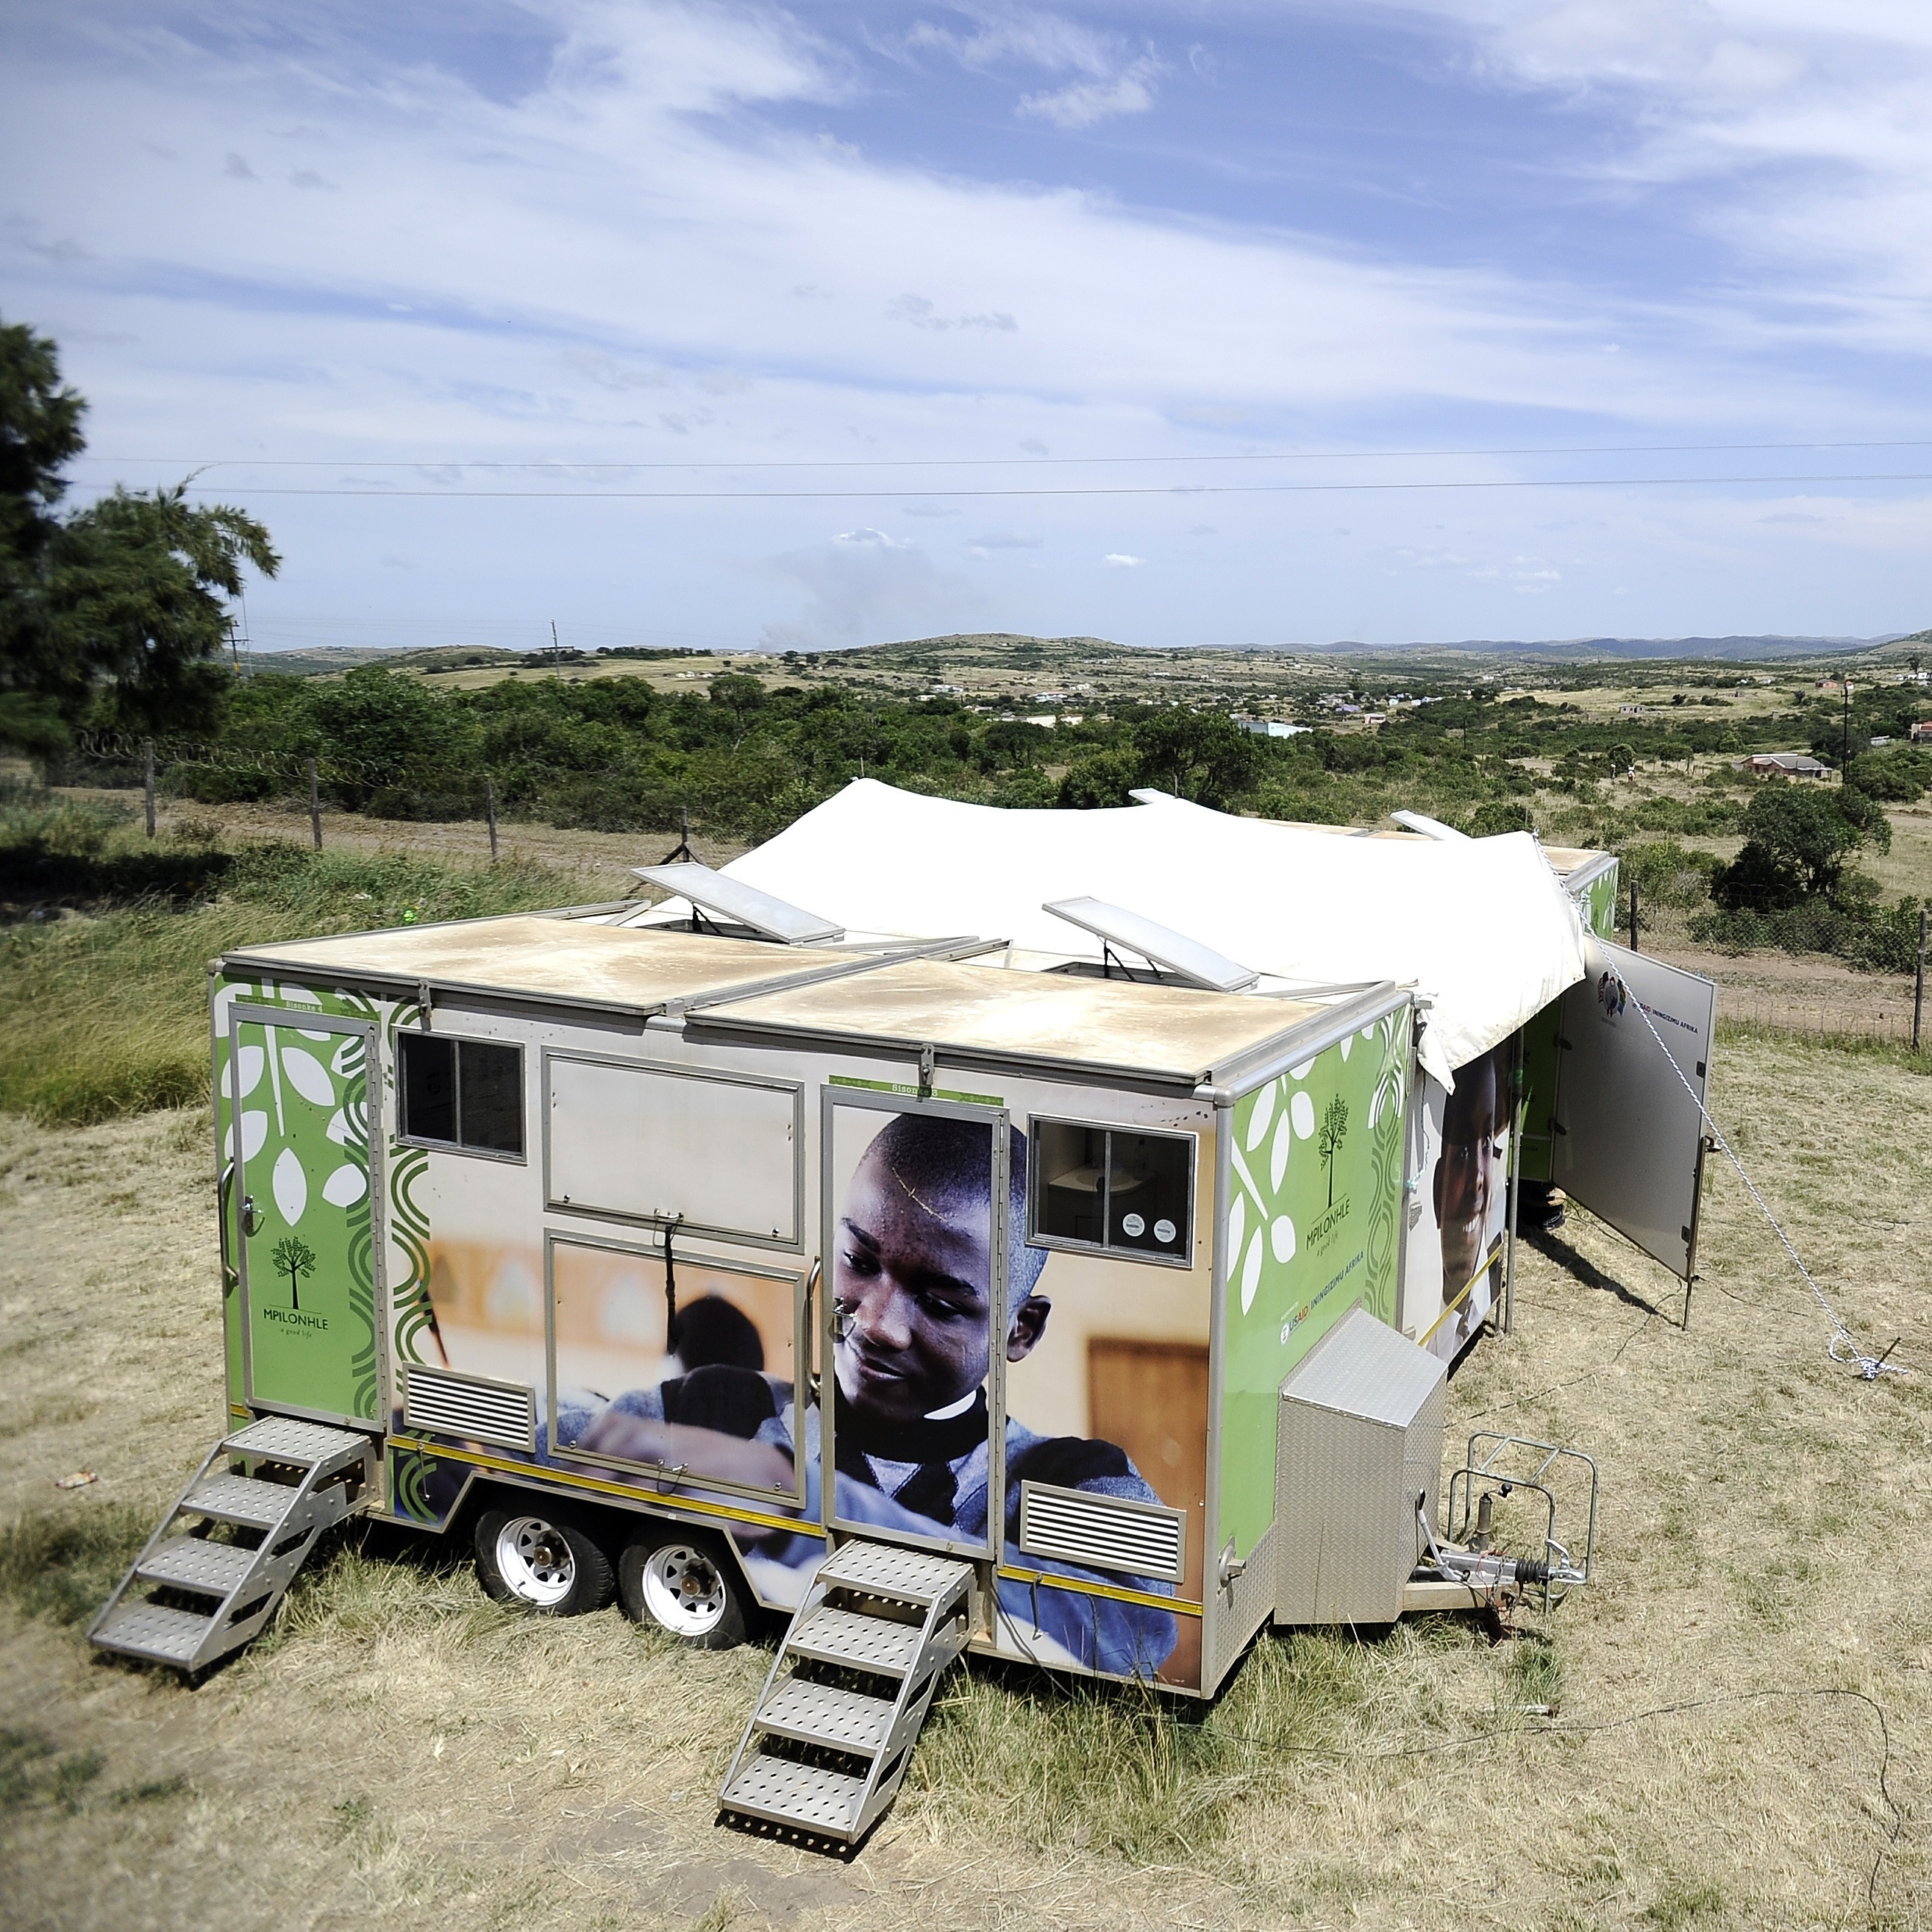 A mobile clinic is set up to test students for HIV at Madwaleni High School near Mtubatuba in KwaZulu-Natal, South Africa.